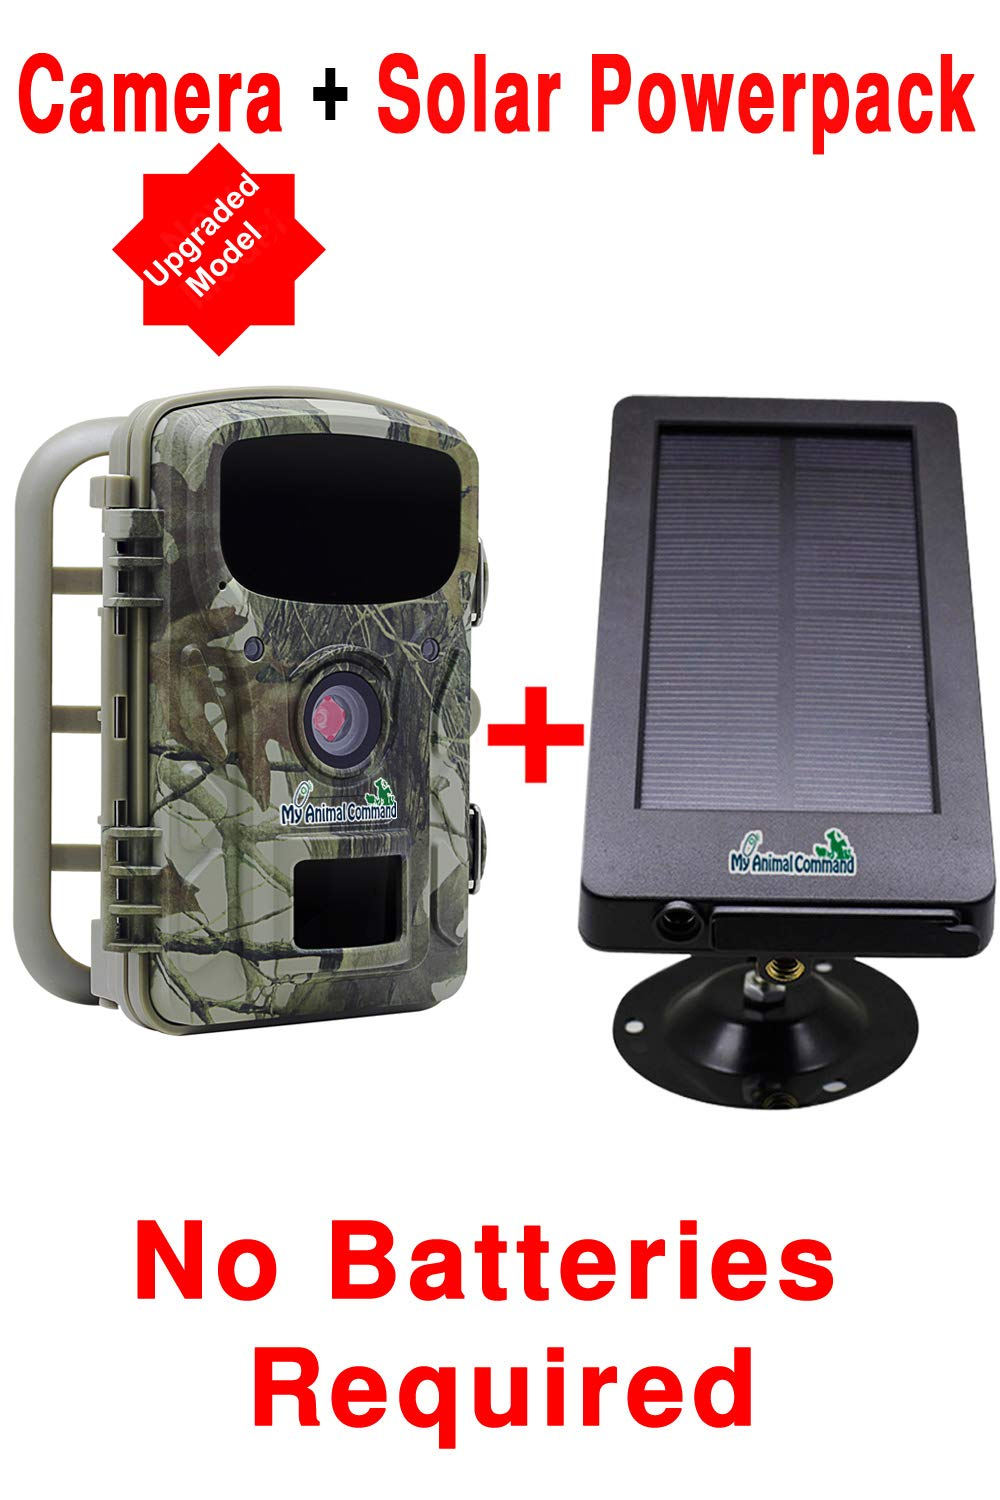 MyCommand Solar Trail Camera 16MP Animal Game Time Lapse Cam with Night Vision Motion Activated, IP66 Waterproof 1080p Spy Outdoor Deer Wildlife Hunting. 16MP Camera and Solar Power Pack Bundle